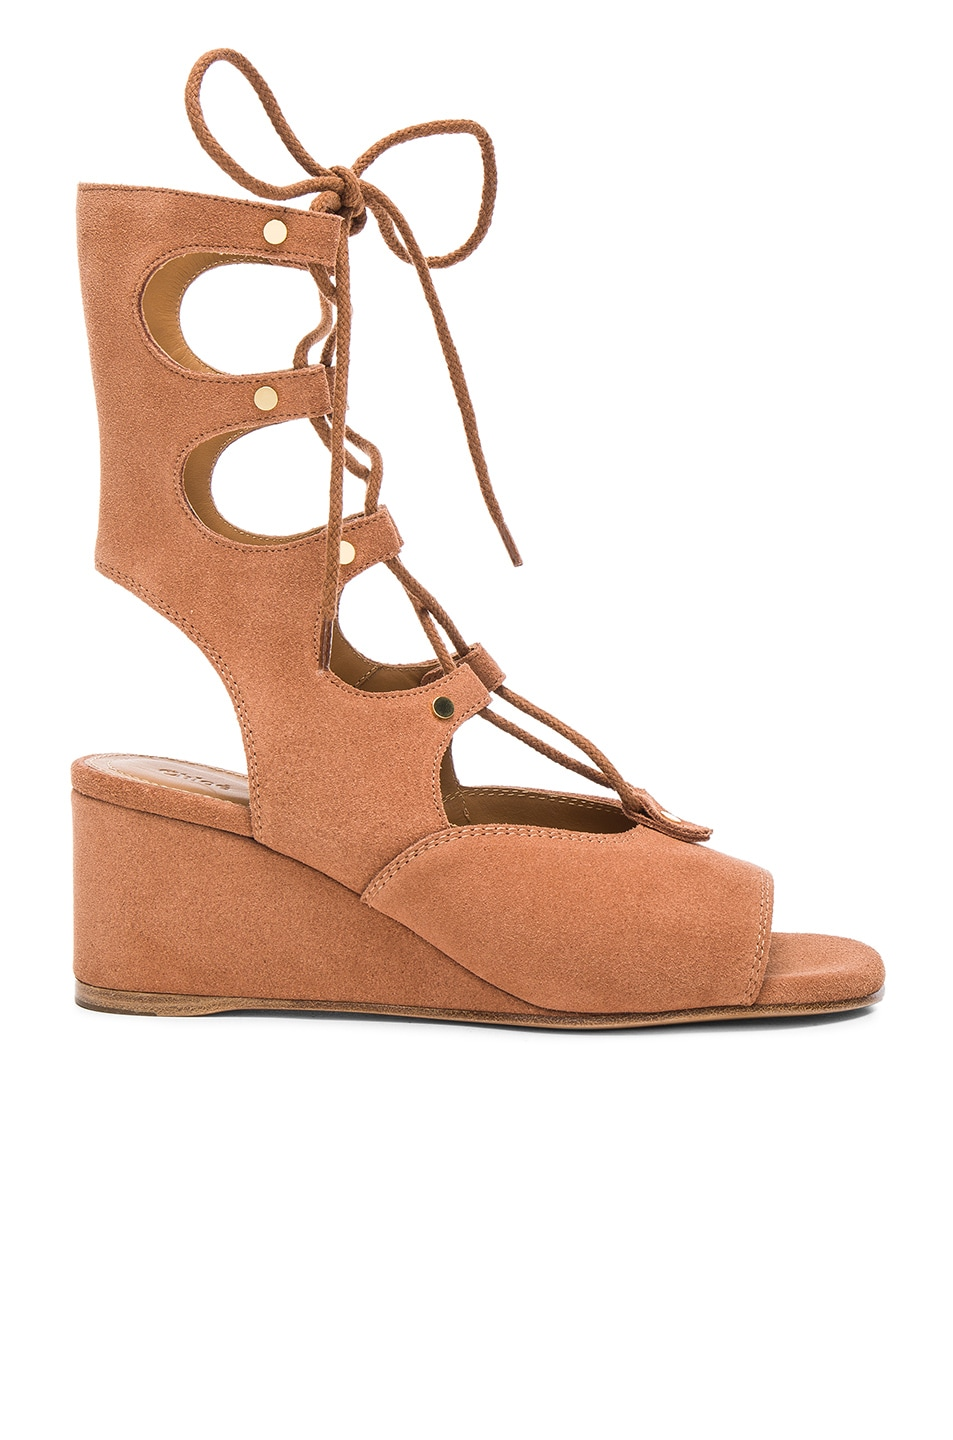 944fbee767bb Image 1 of Chloe Suede Foster Wedge Sandals in Camel